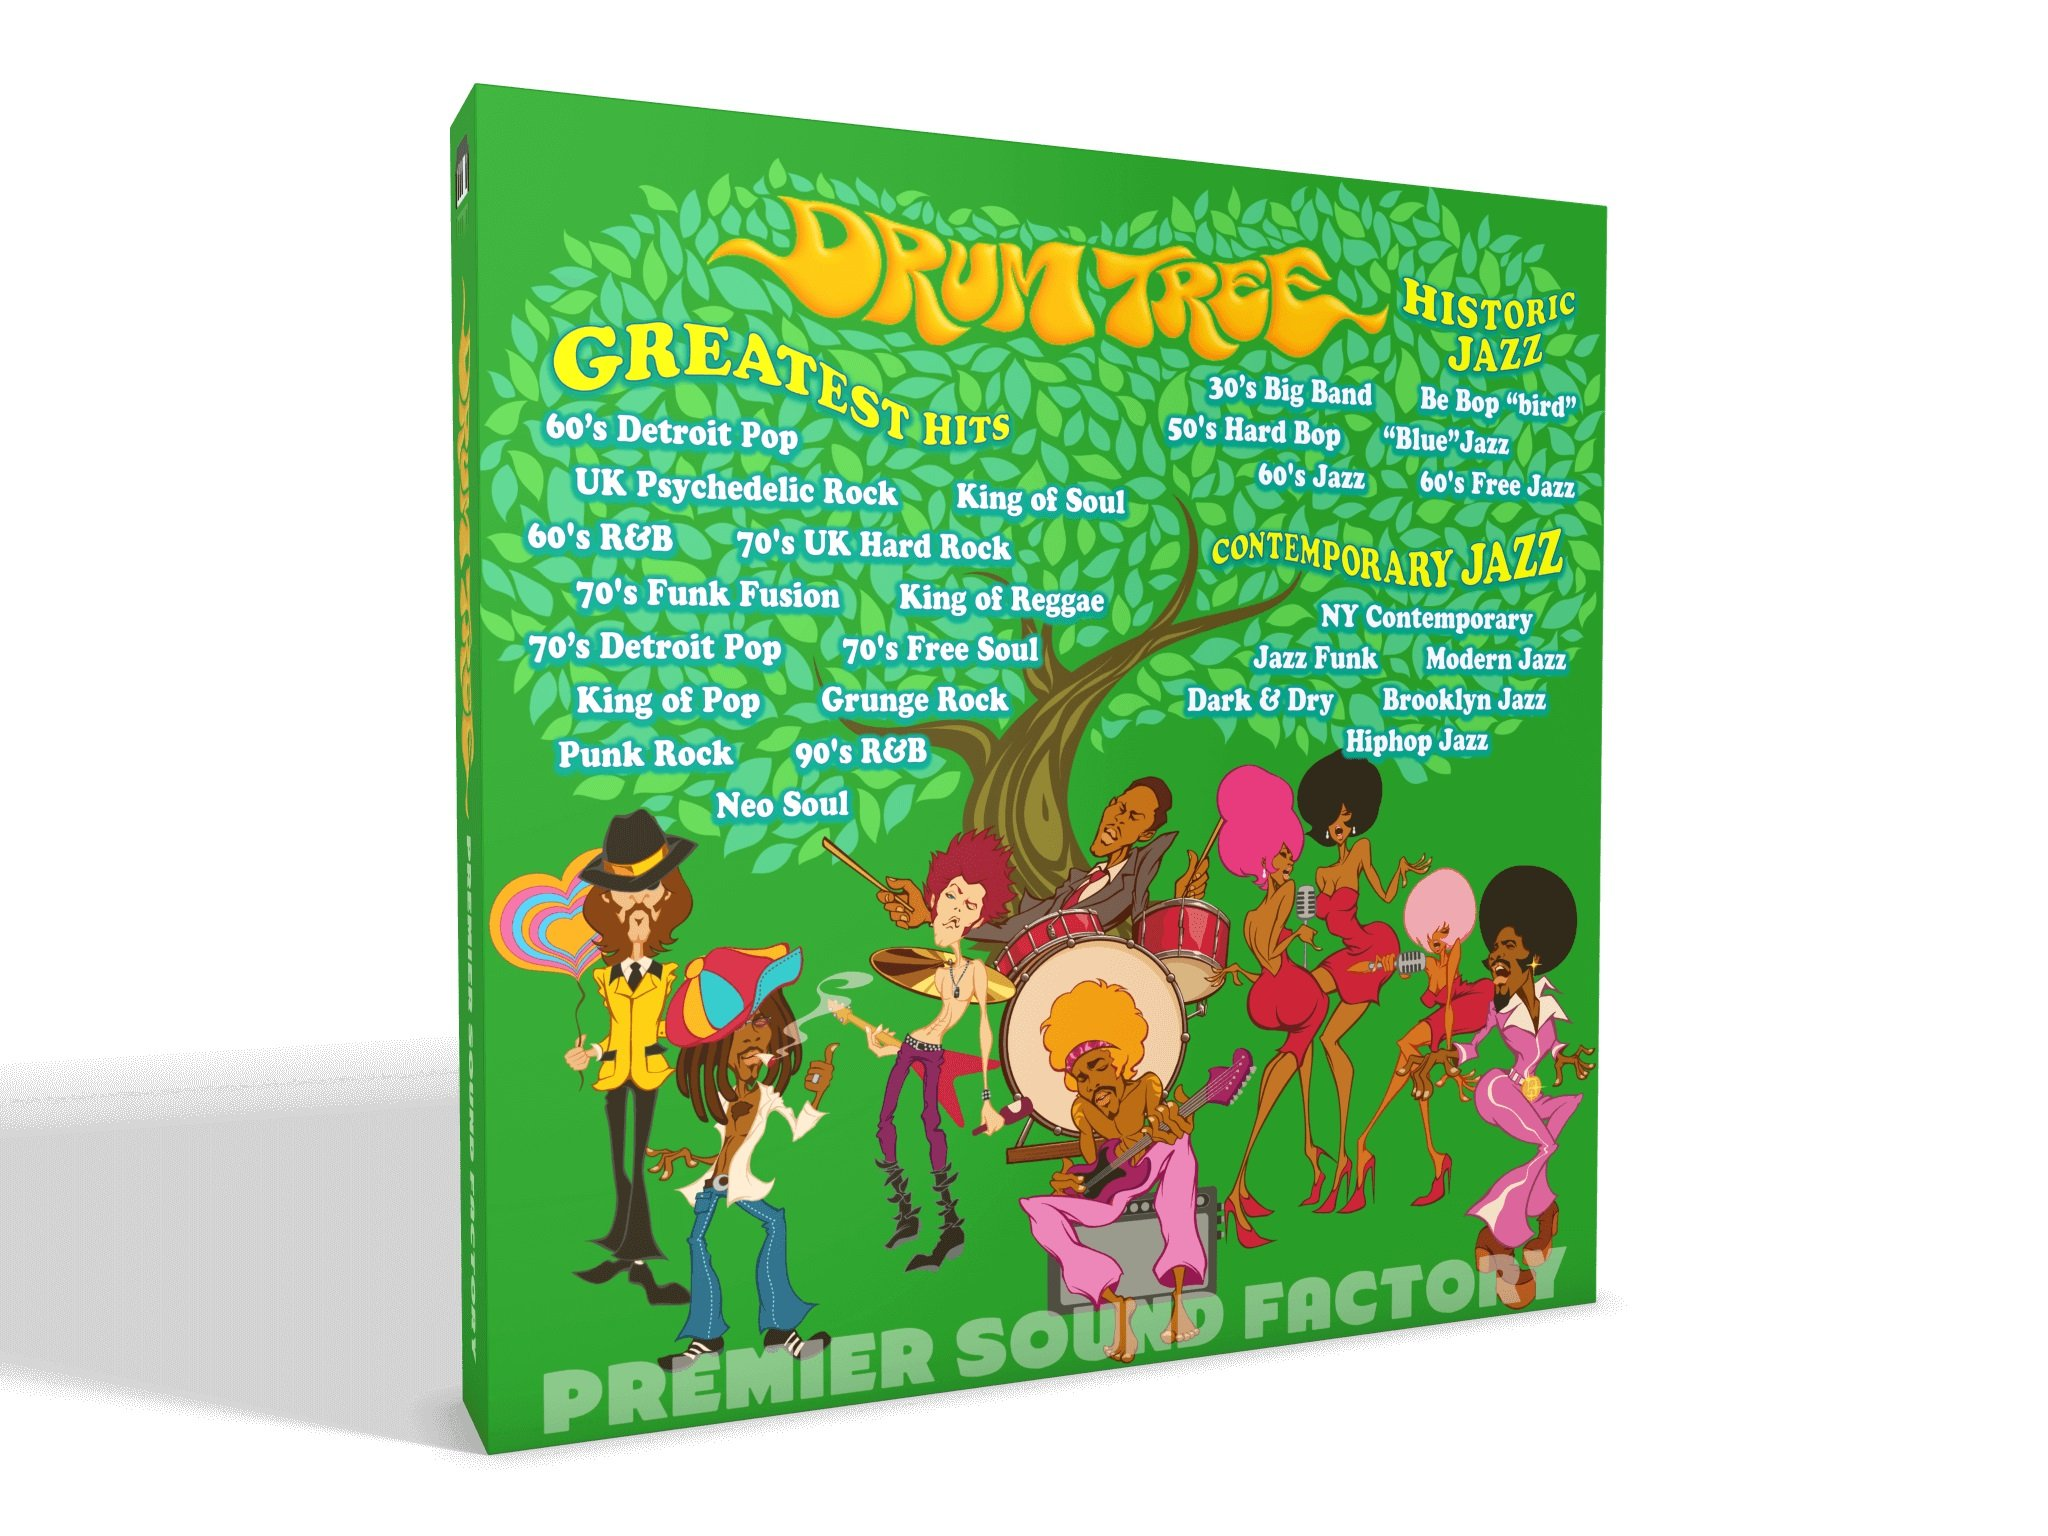 PREMIER SOUND FACTORY Drum Tree Box